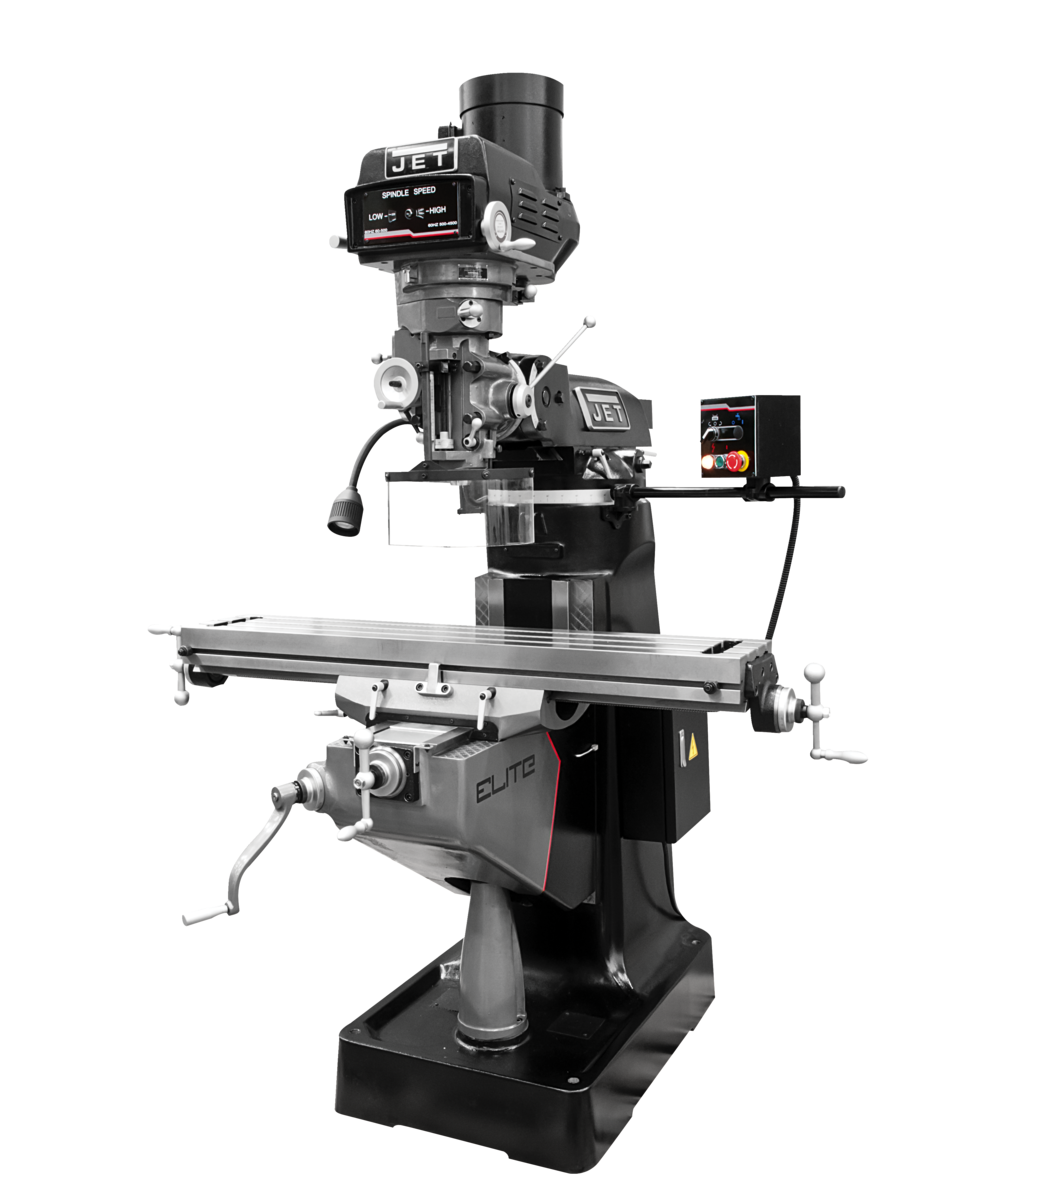 ETM-949 Mill with 3-Axis Newall DP700 (Quill) DRO and X, Y-Axis JET Powerfeeds